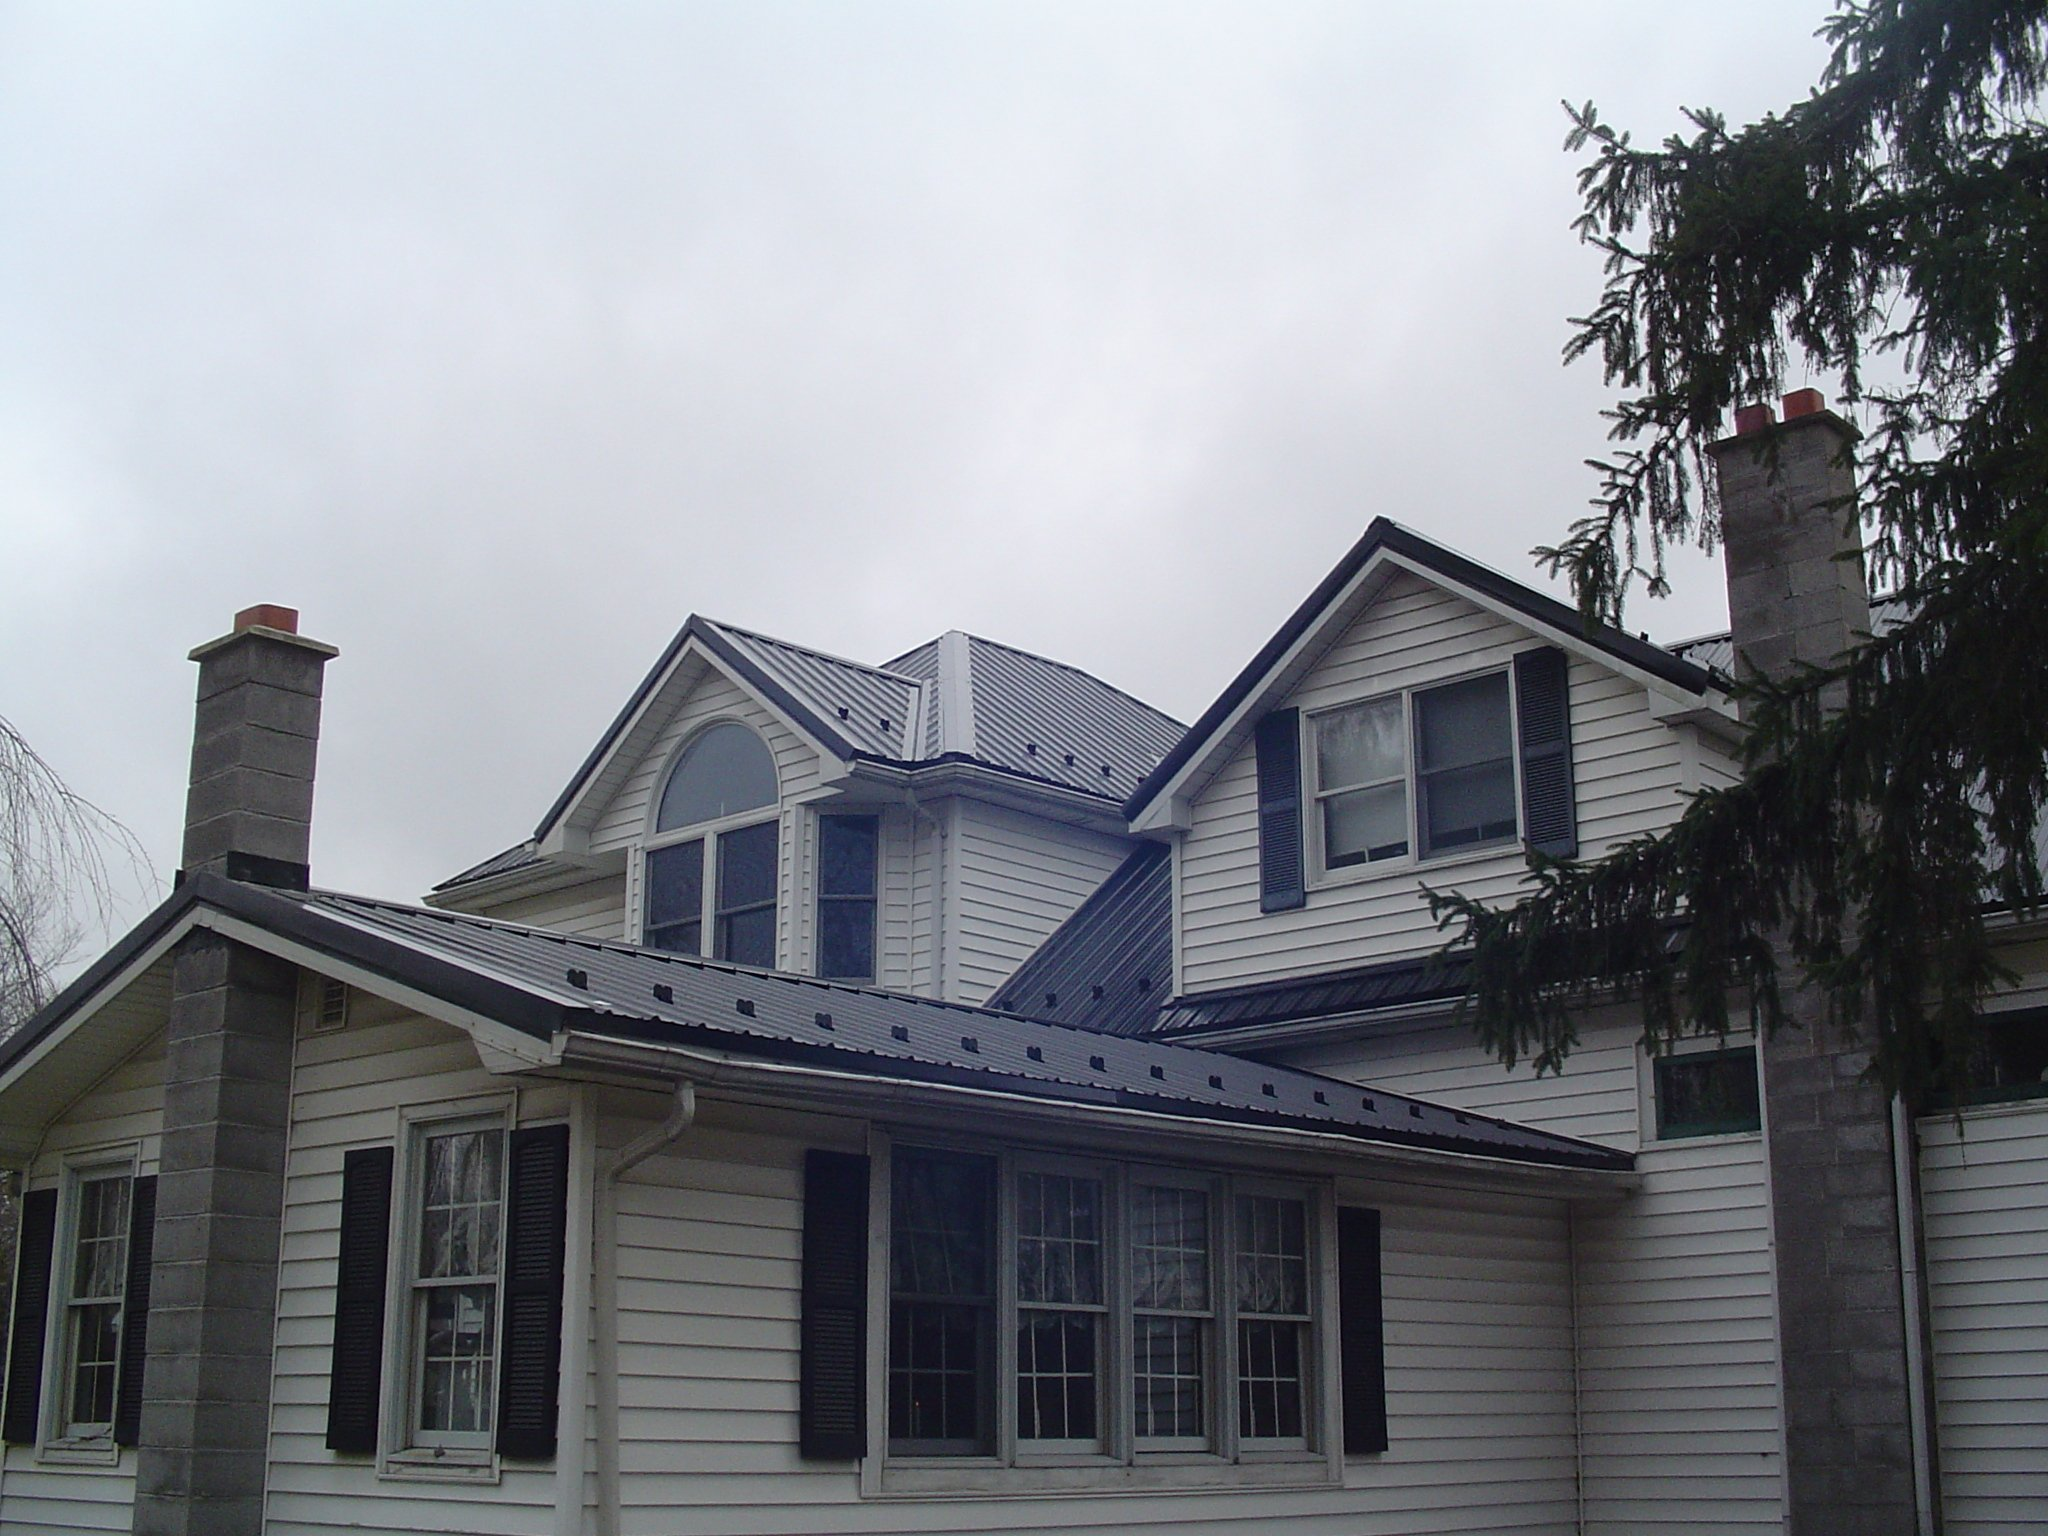 House in Lockport NY, Roofing Service